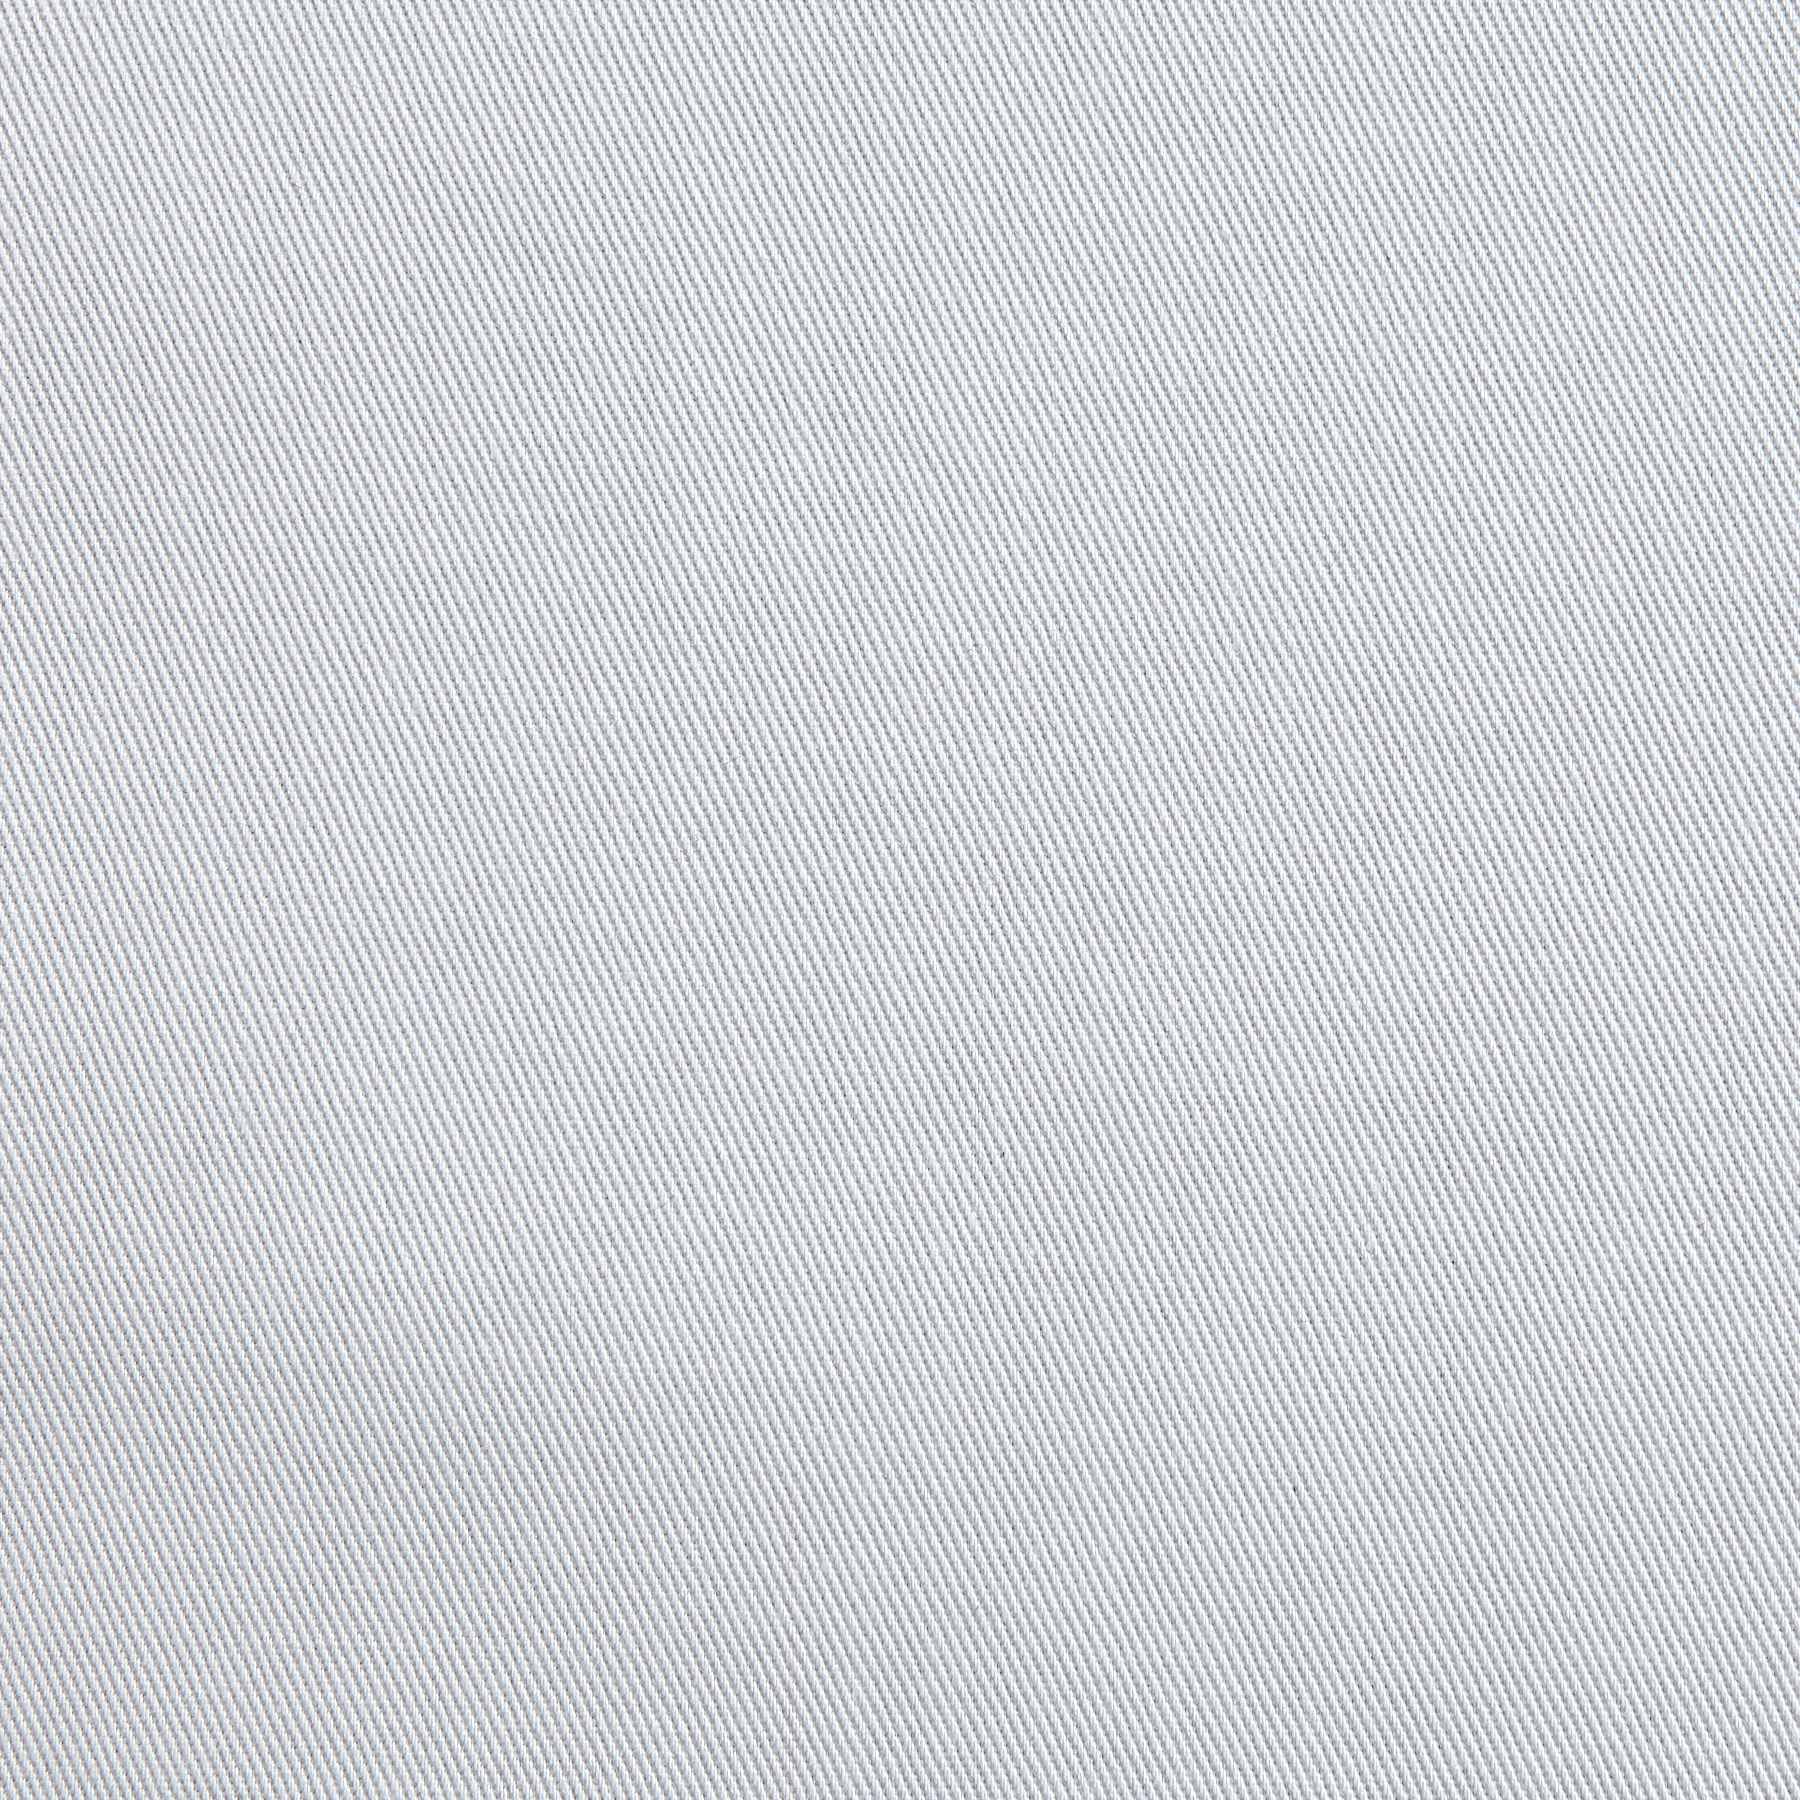 Organic Cotton Twill White Fabric